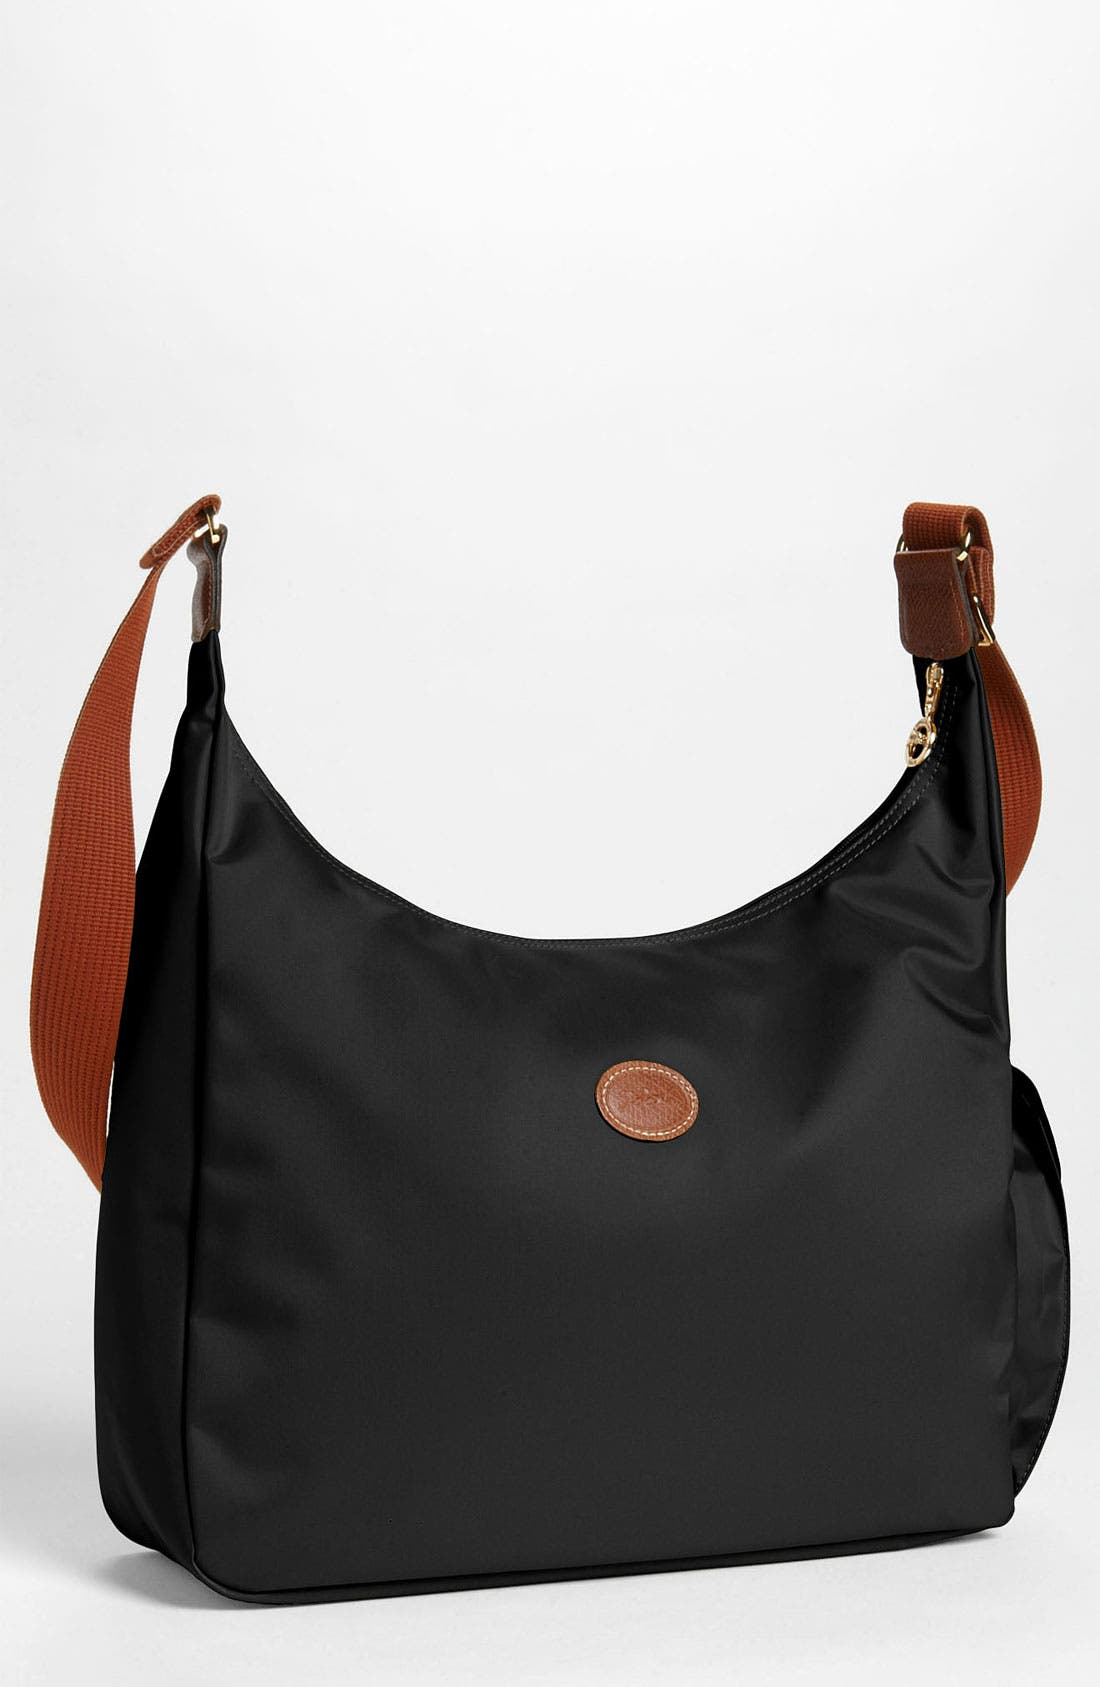 Main Image - Longchamp 'Le Pliage' Convertible Hobo